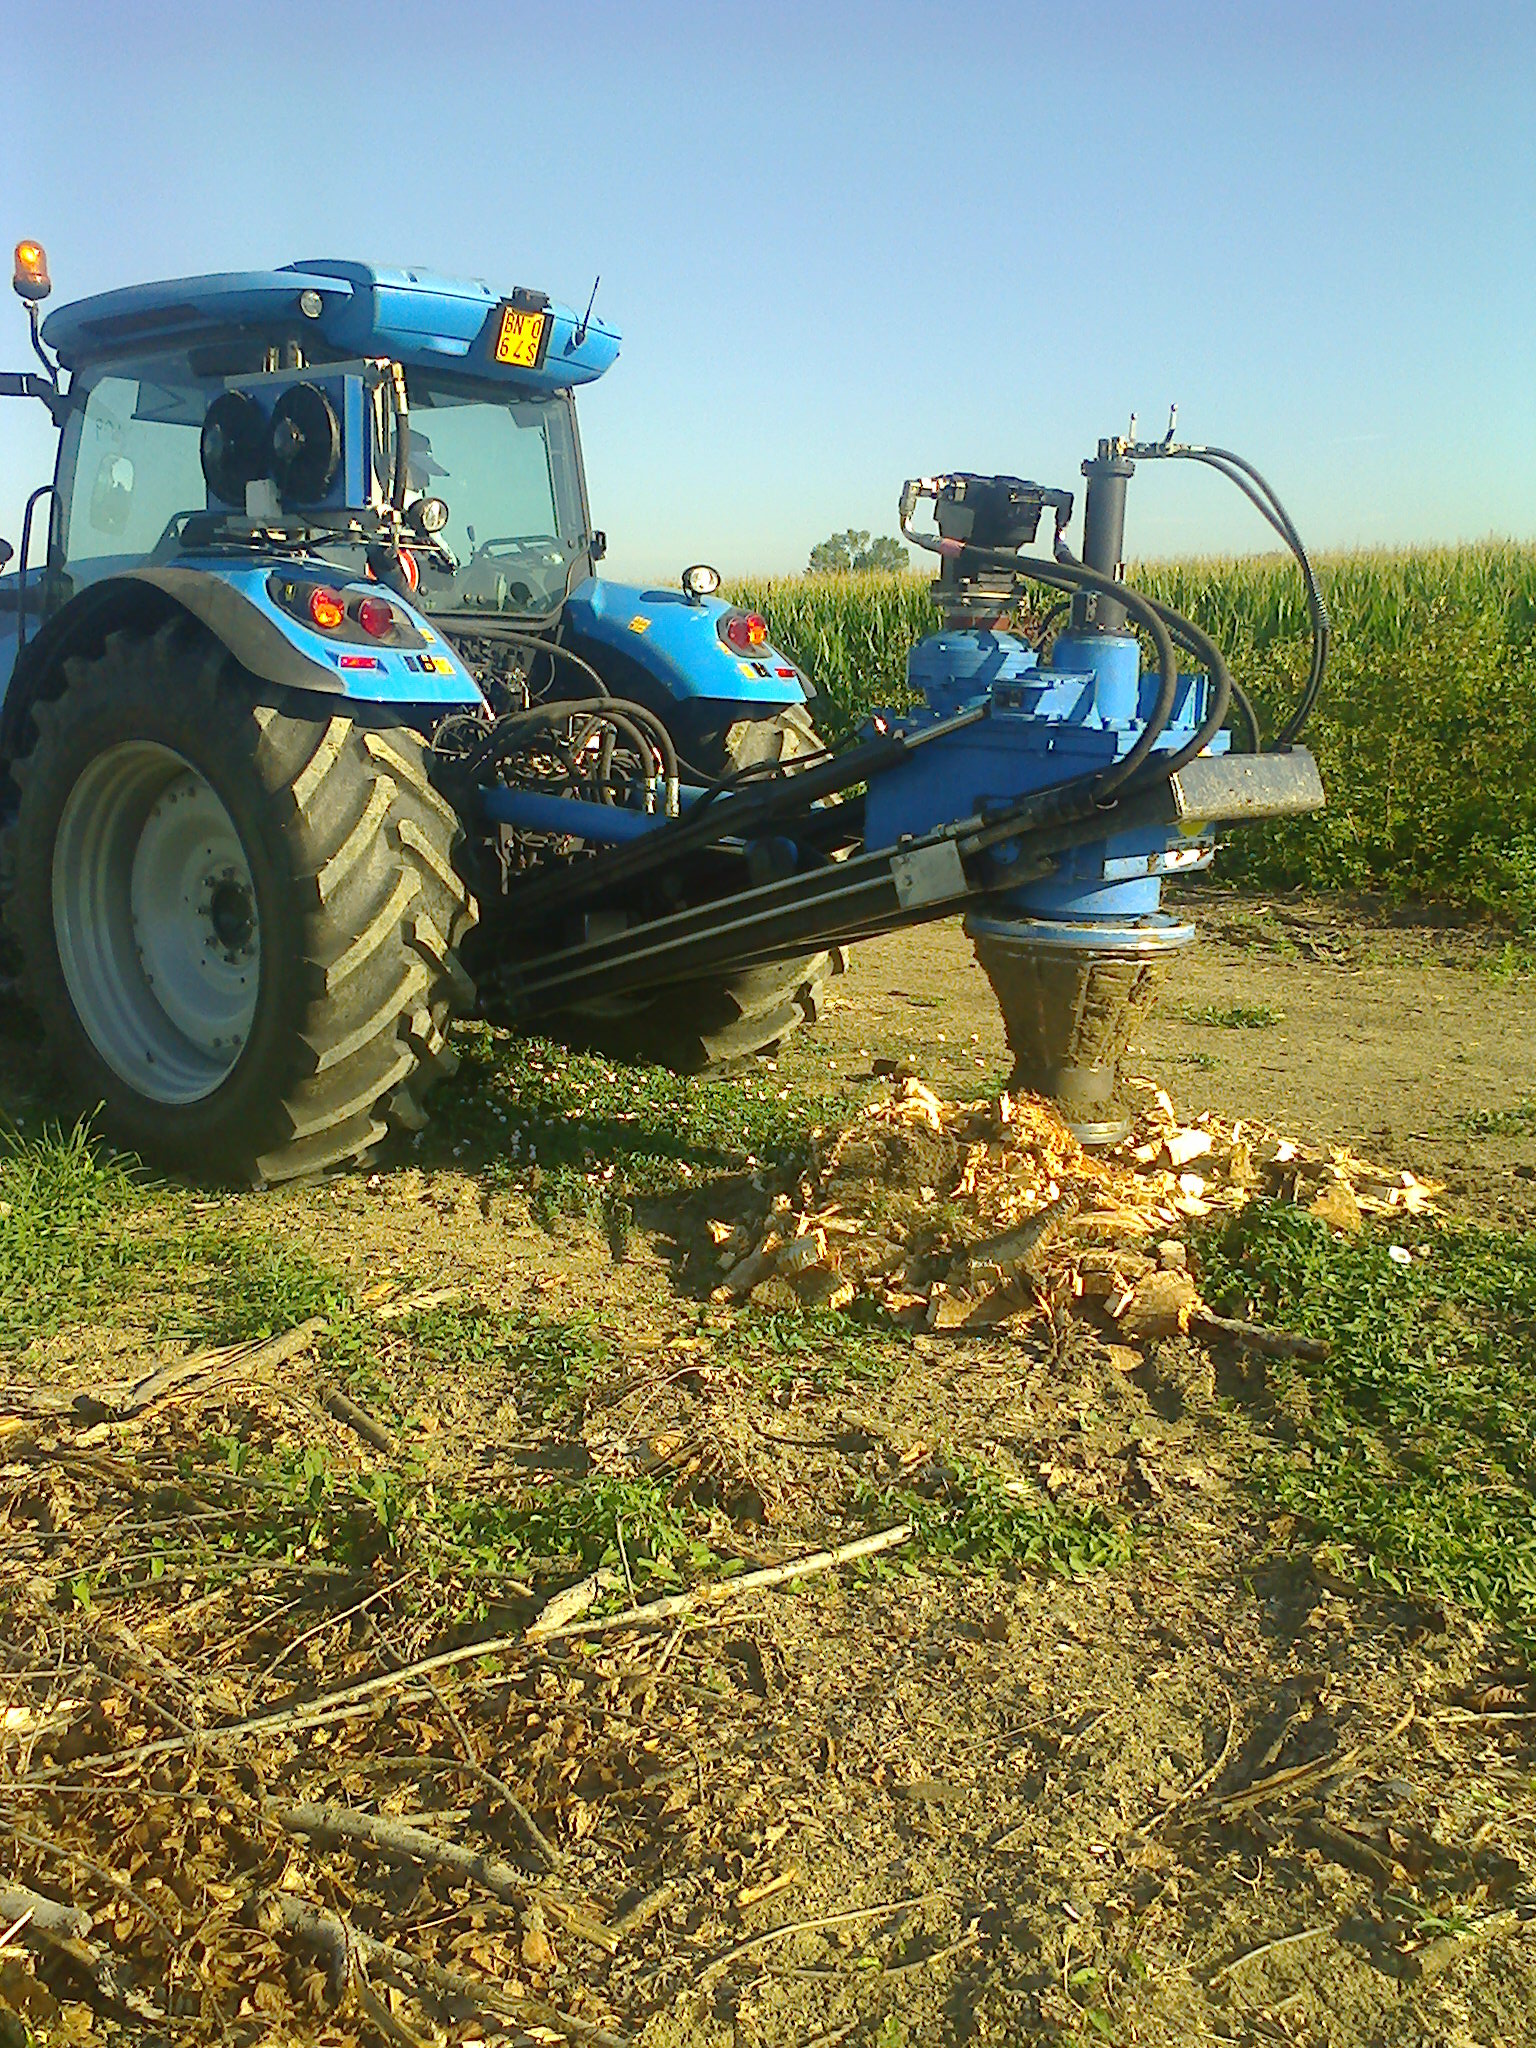 Mechanical stump-remover for tractor